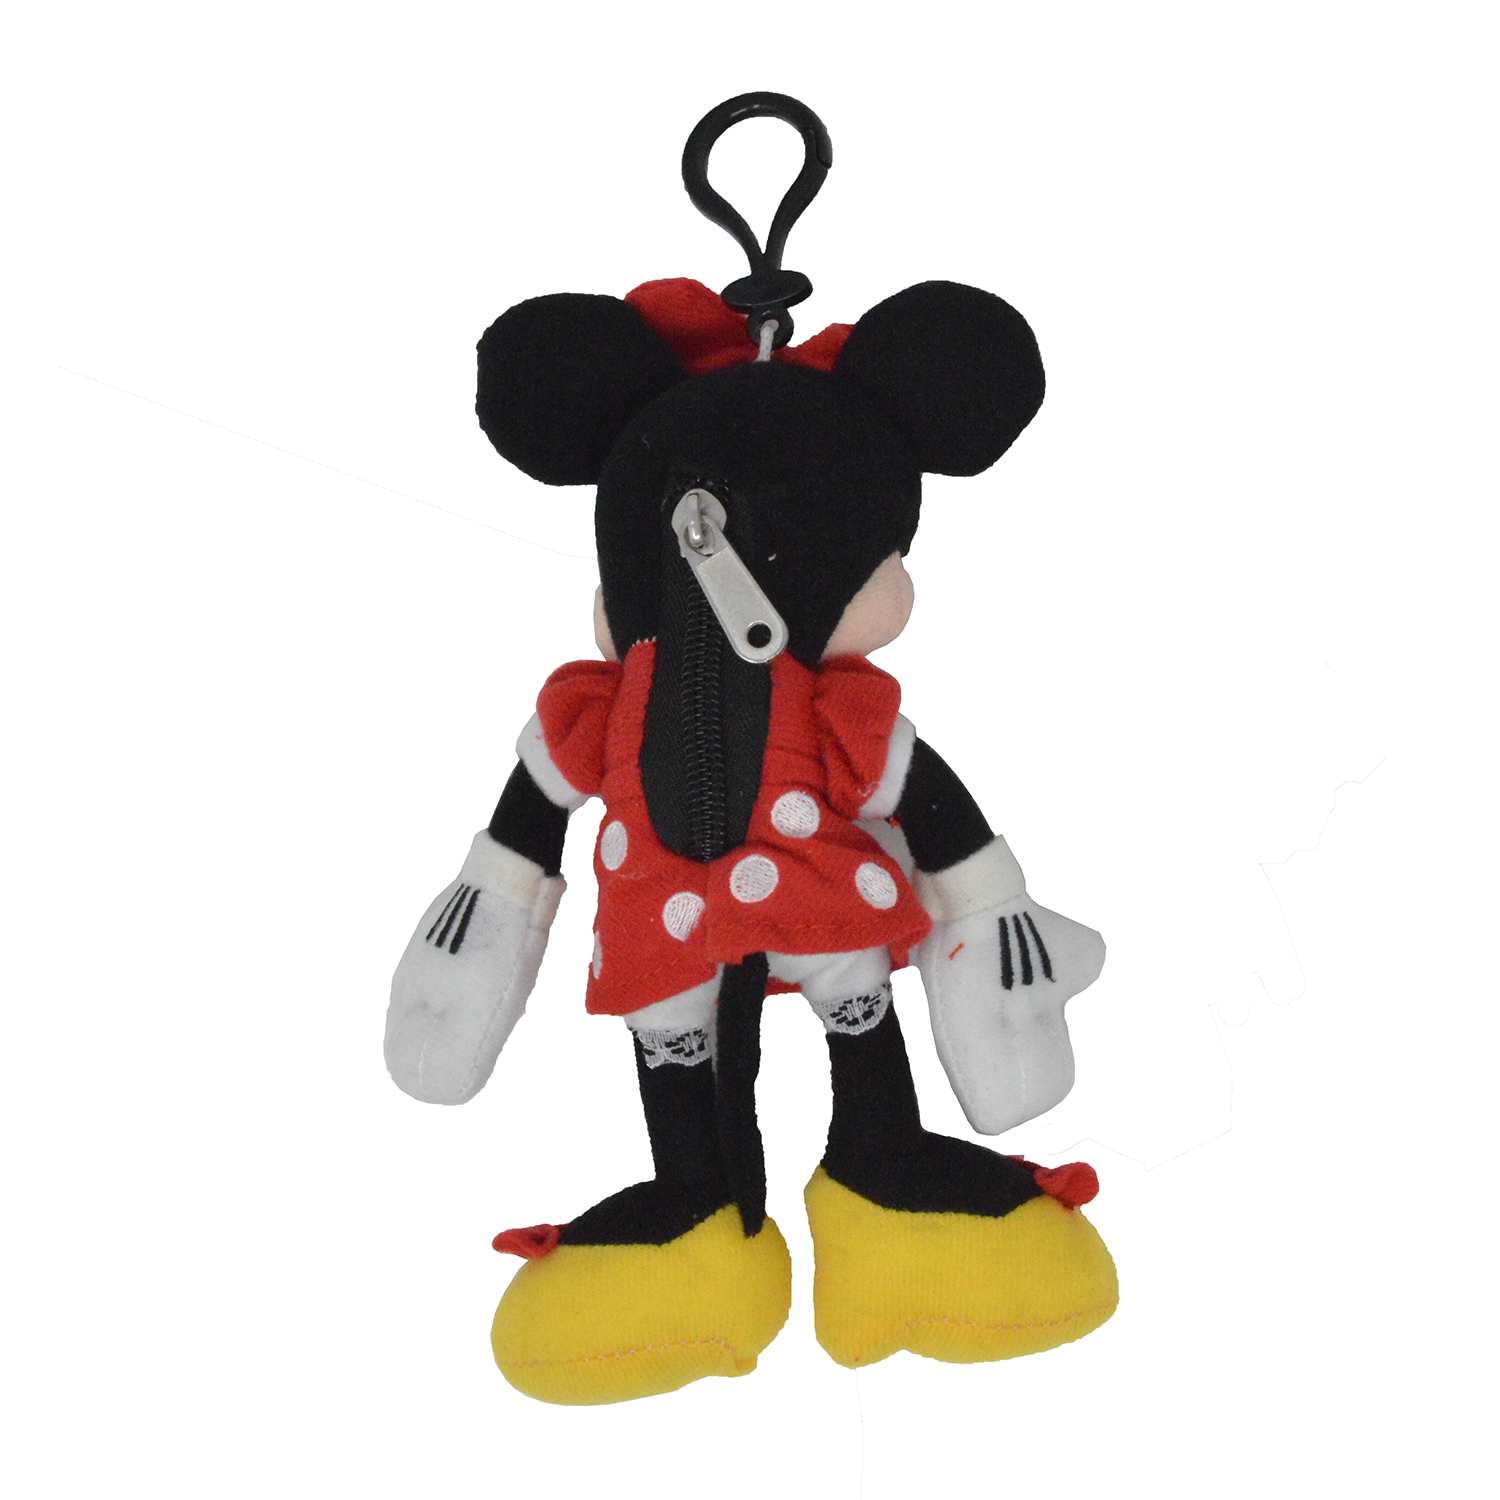 Cartoon-Plush-Coin-Clip-Toy-Bag-with-Zipper-for-Backpacks-Multiple-Styles thumbnail 19